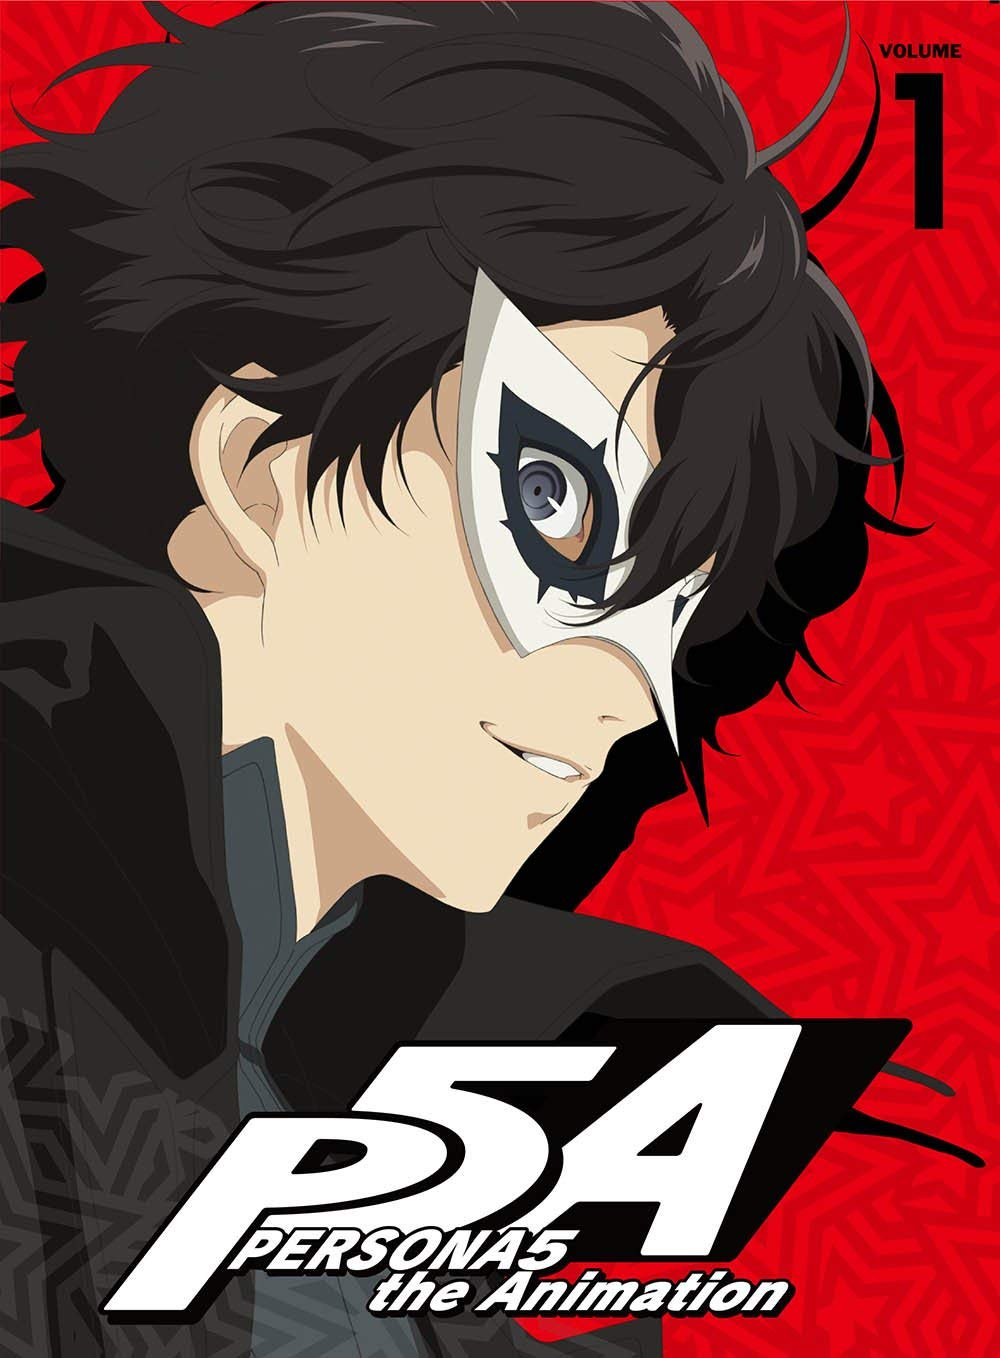 PERSONA5 the Animation[BD01] OPENING & ENDING THEME DISC